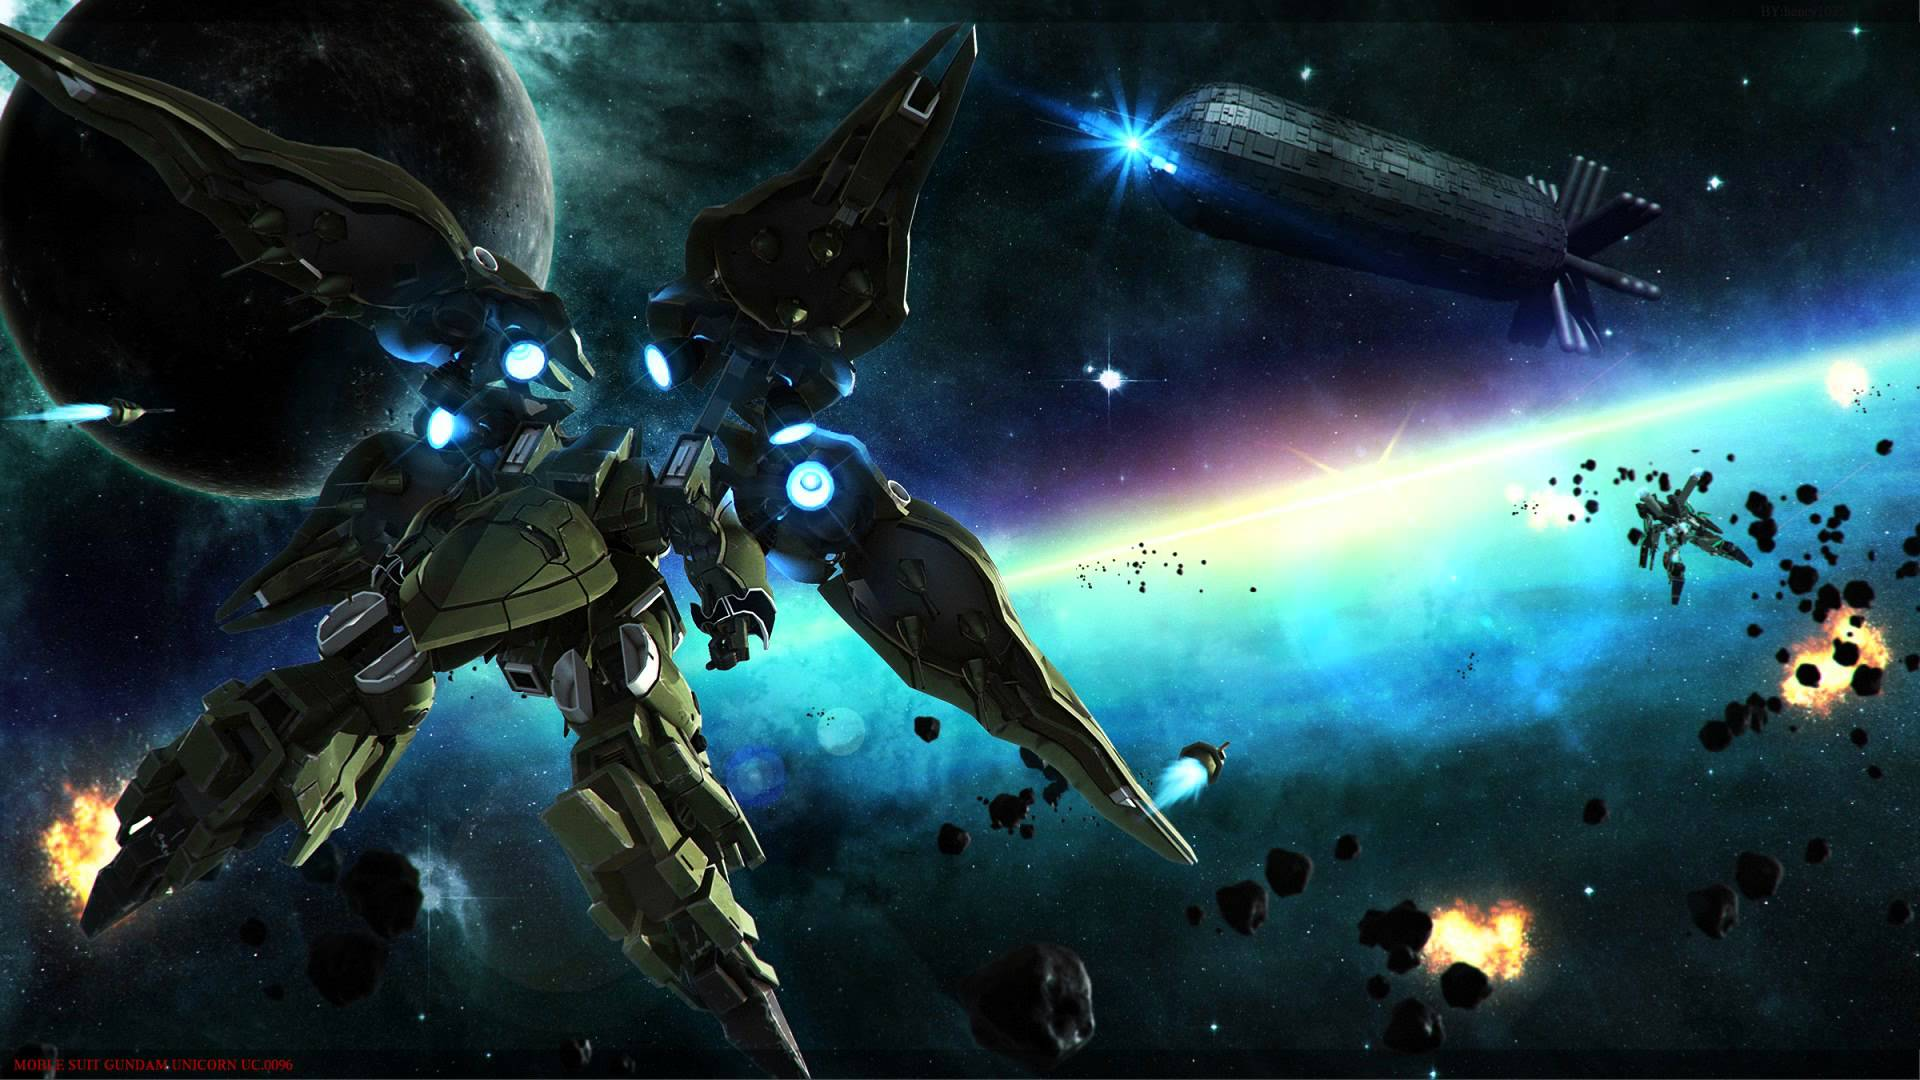 REC Mix   Gundam Unicorn OST 2   15 High Quality 1080p HD 1920x1080